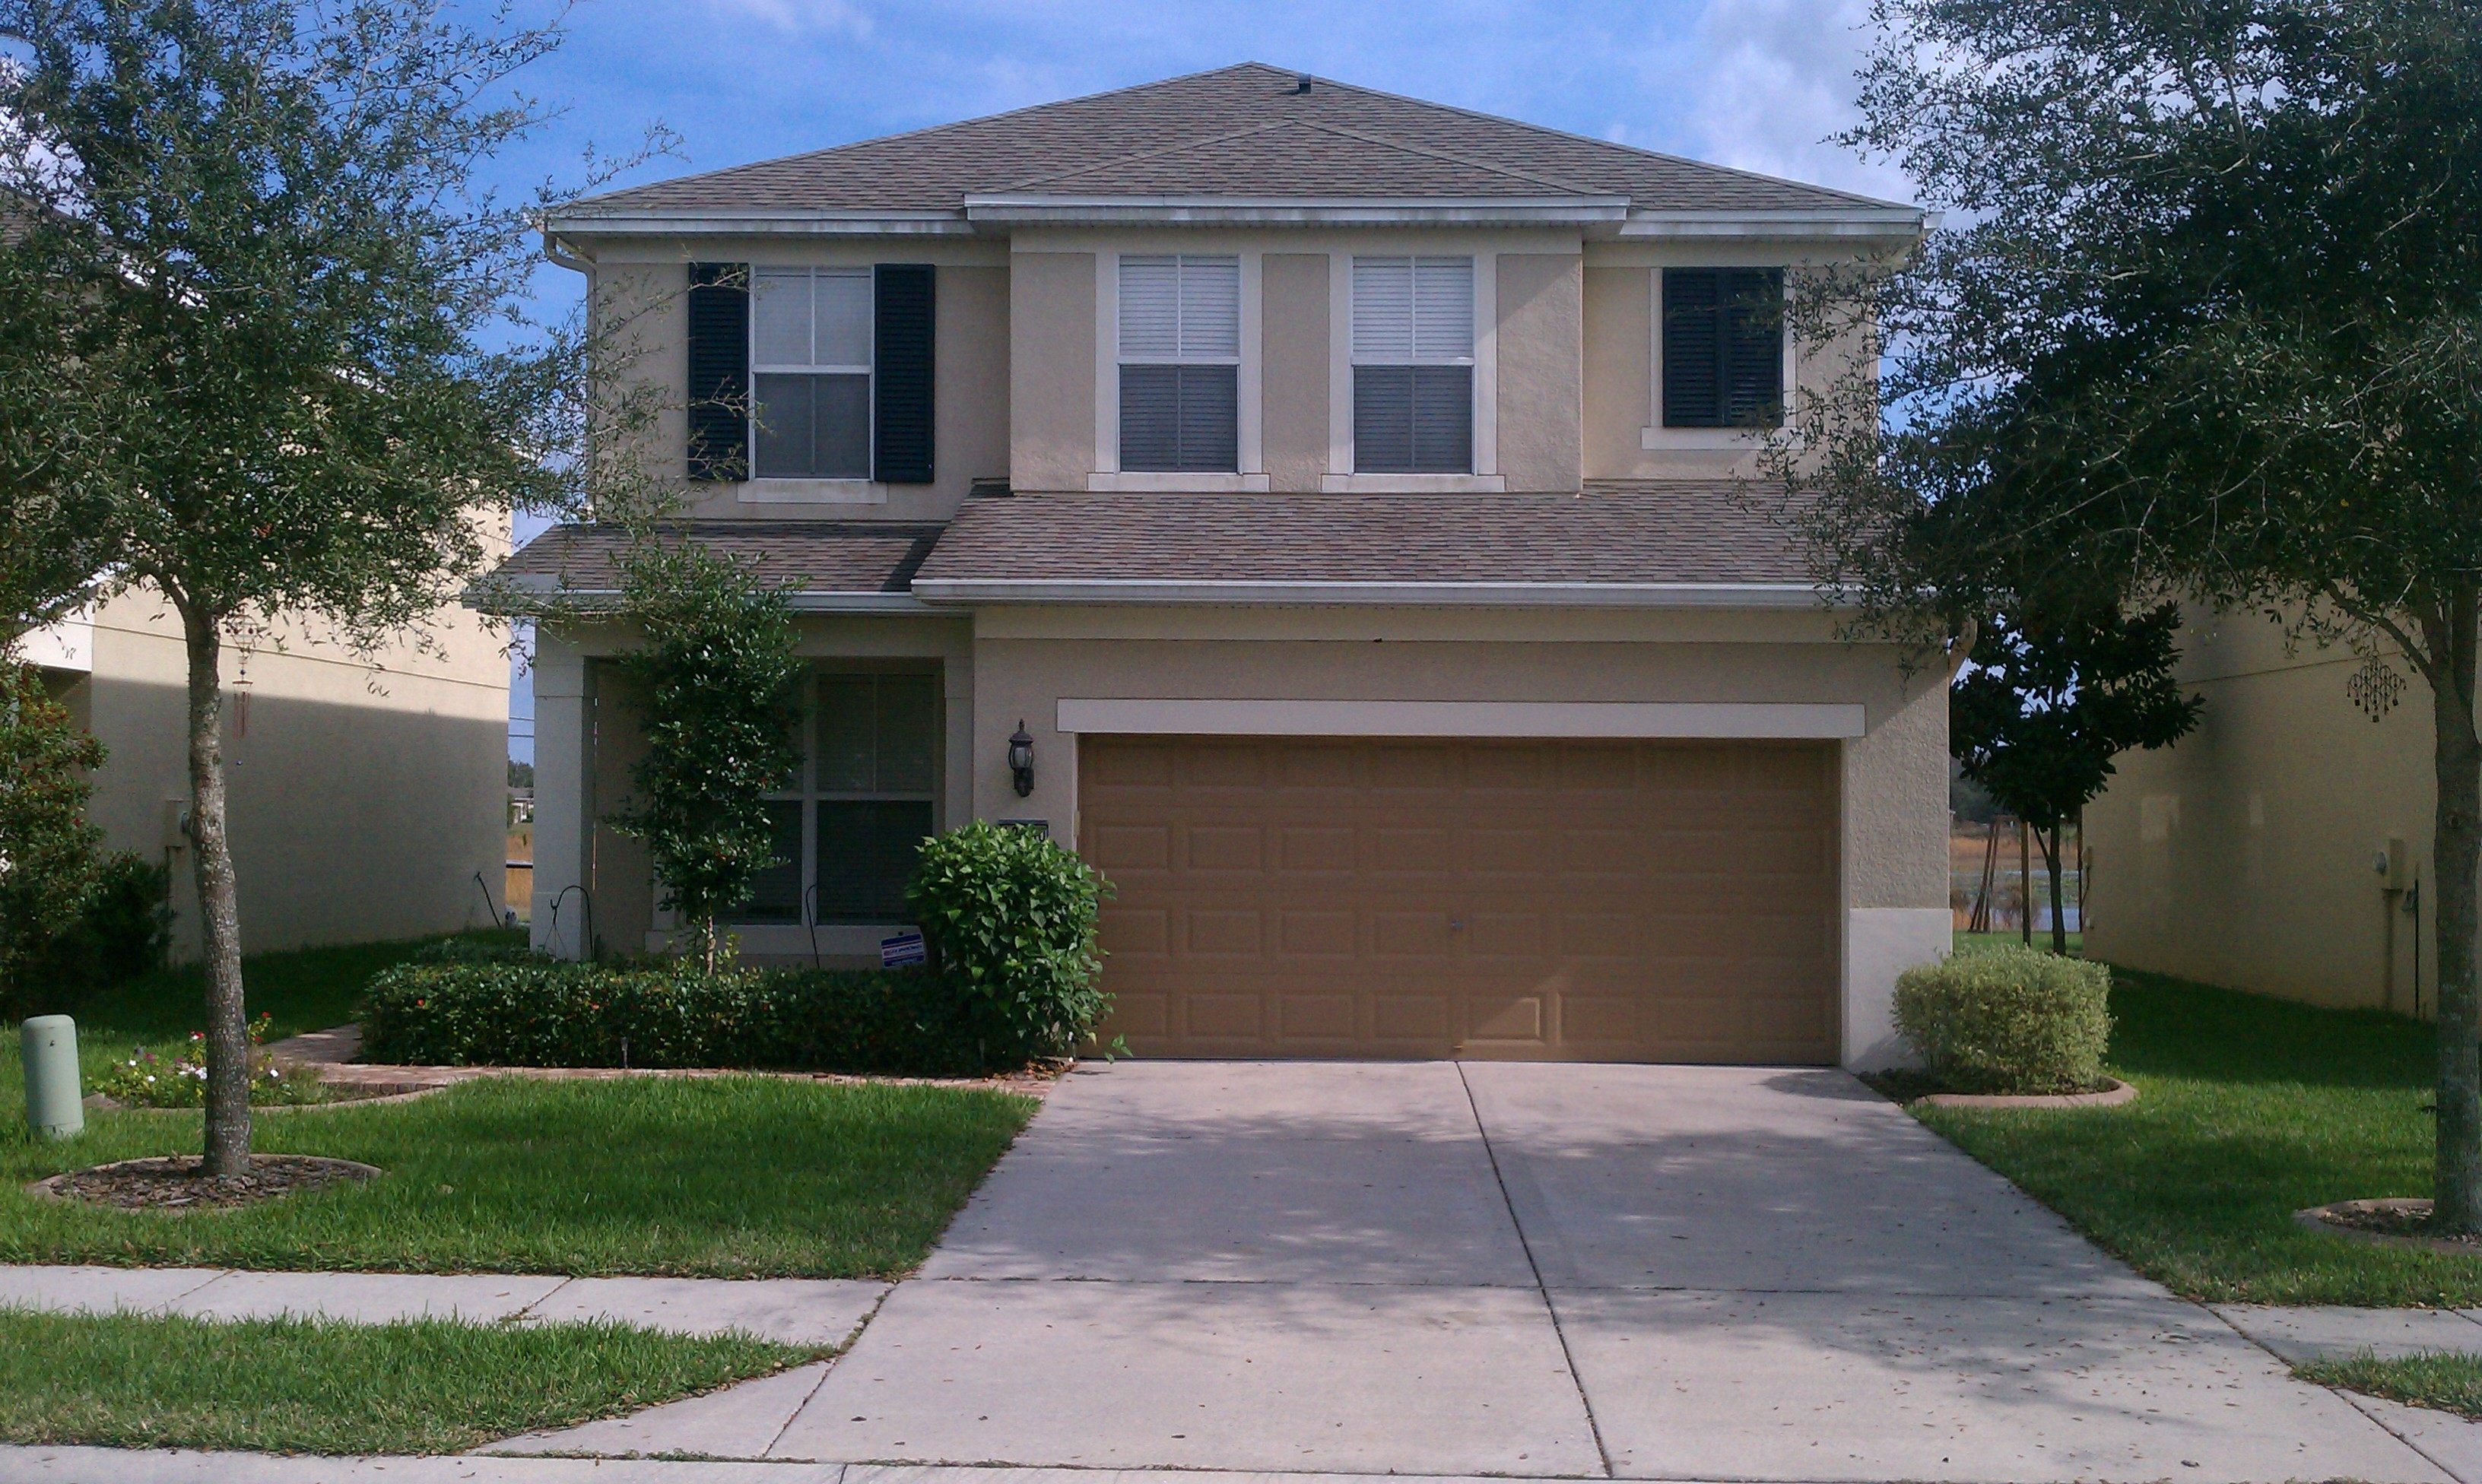 Houses For Rent In Hudson FL – Houses For Sale in Hudson